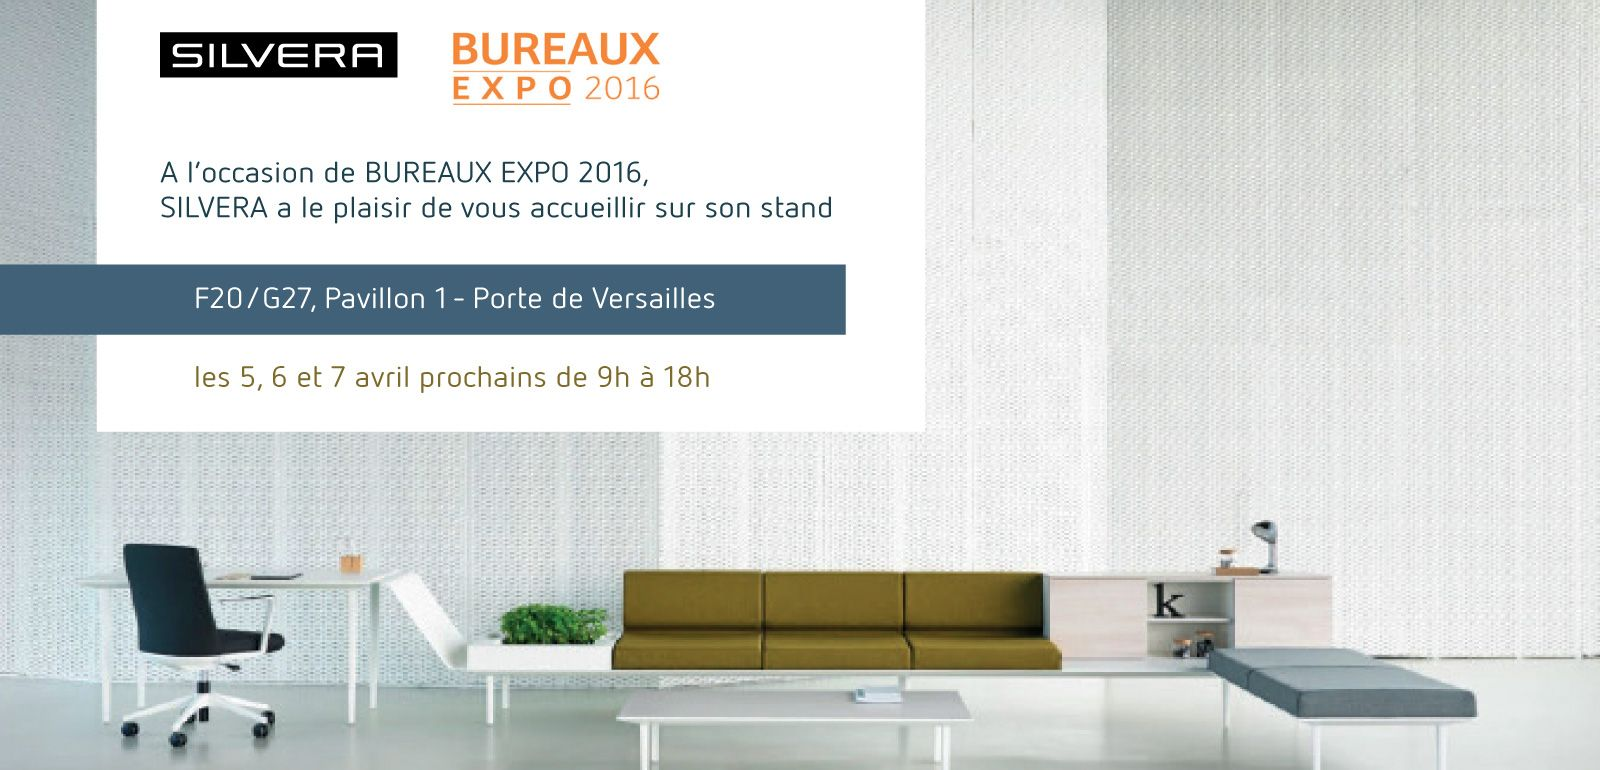 silvera au salon bureaux expo silvera. Black Bedroom Furniture Sets. Home Design Ideas